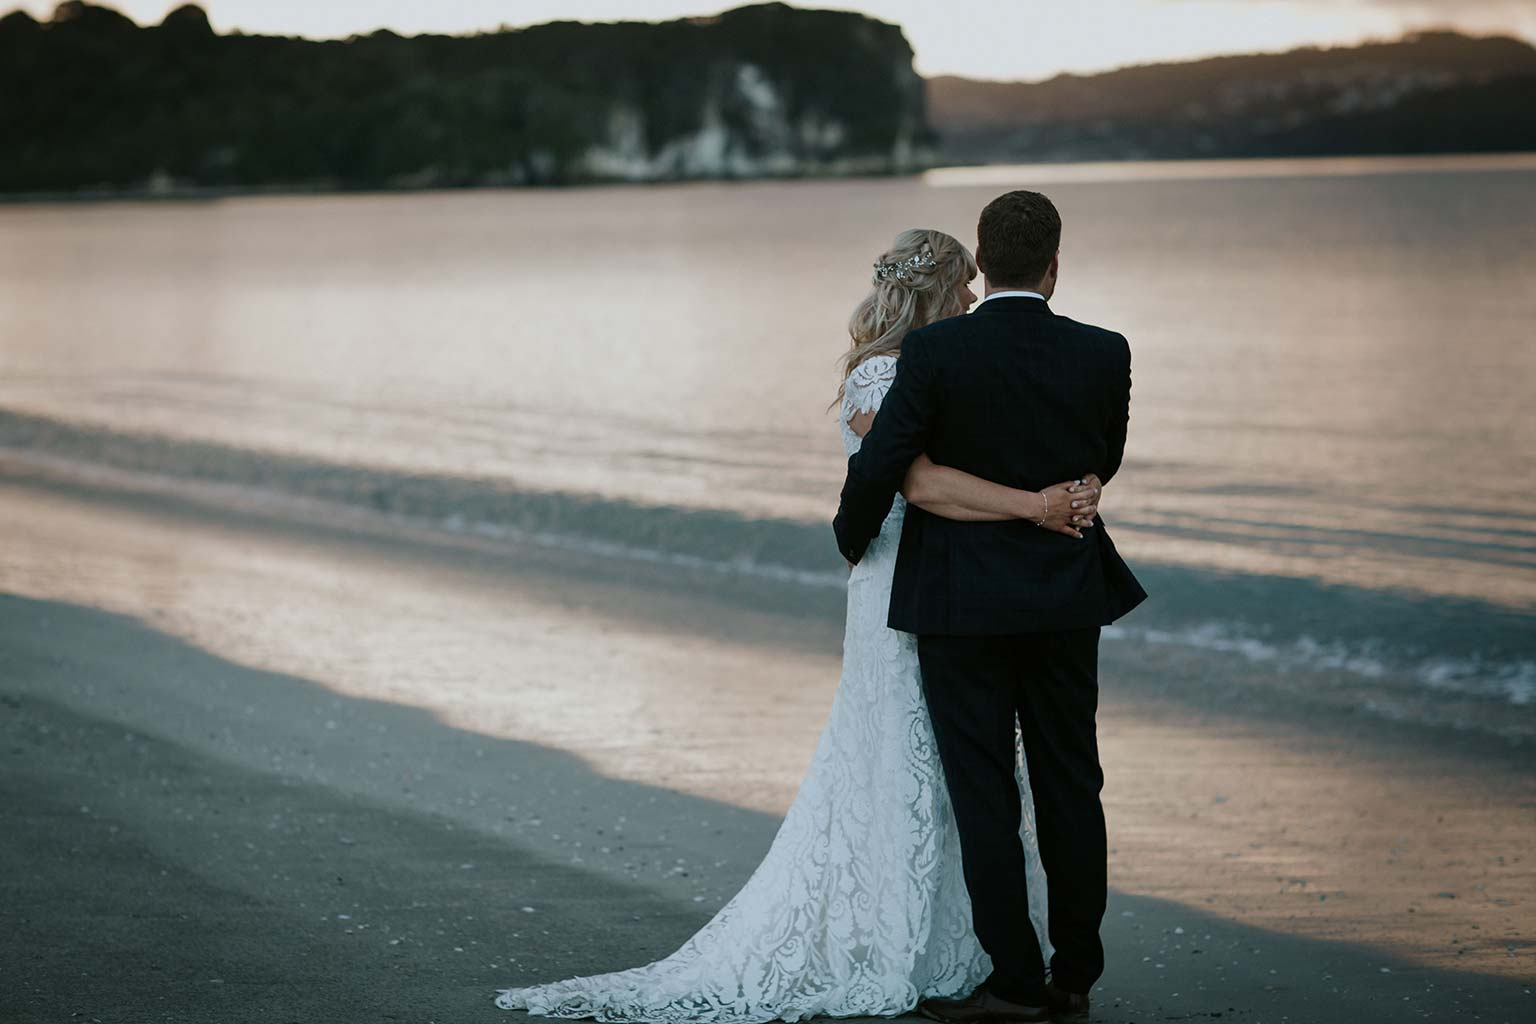 Vinka Design Features Real Weddings - bride wearing bespoke Vinka wedding gown - bride and groom arm in arm next to the ocean on the beach at sunset